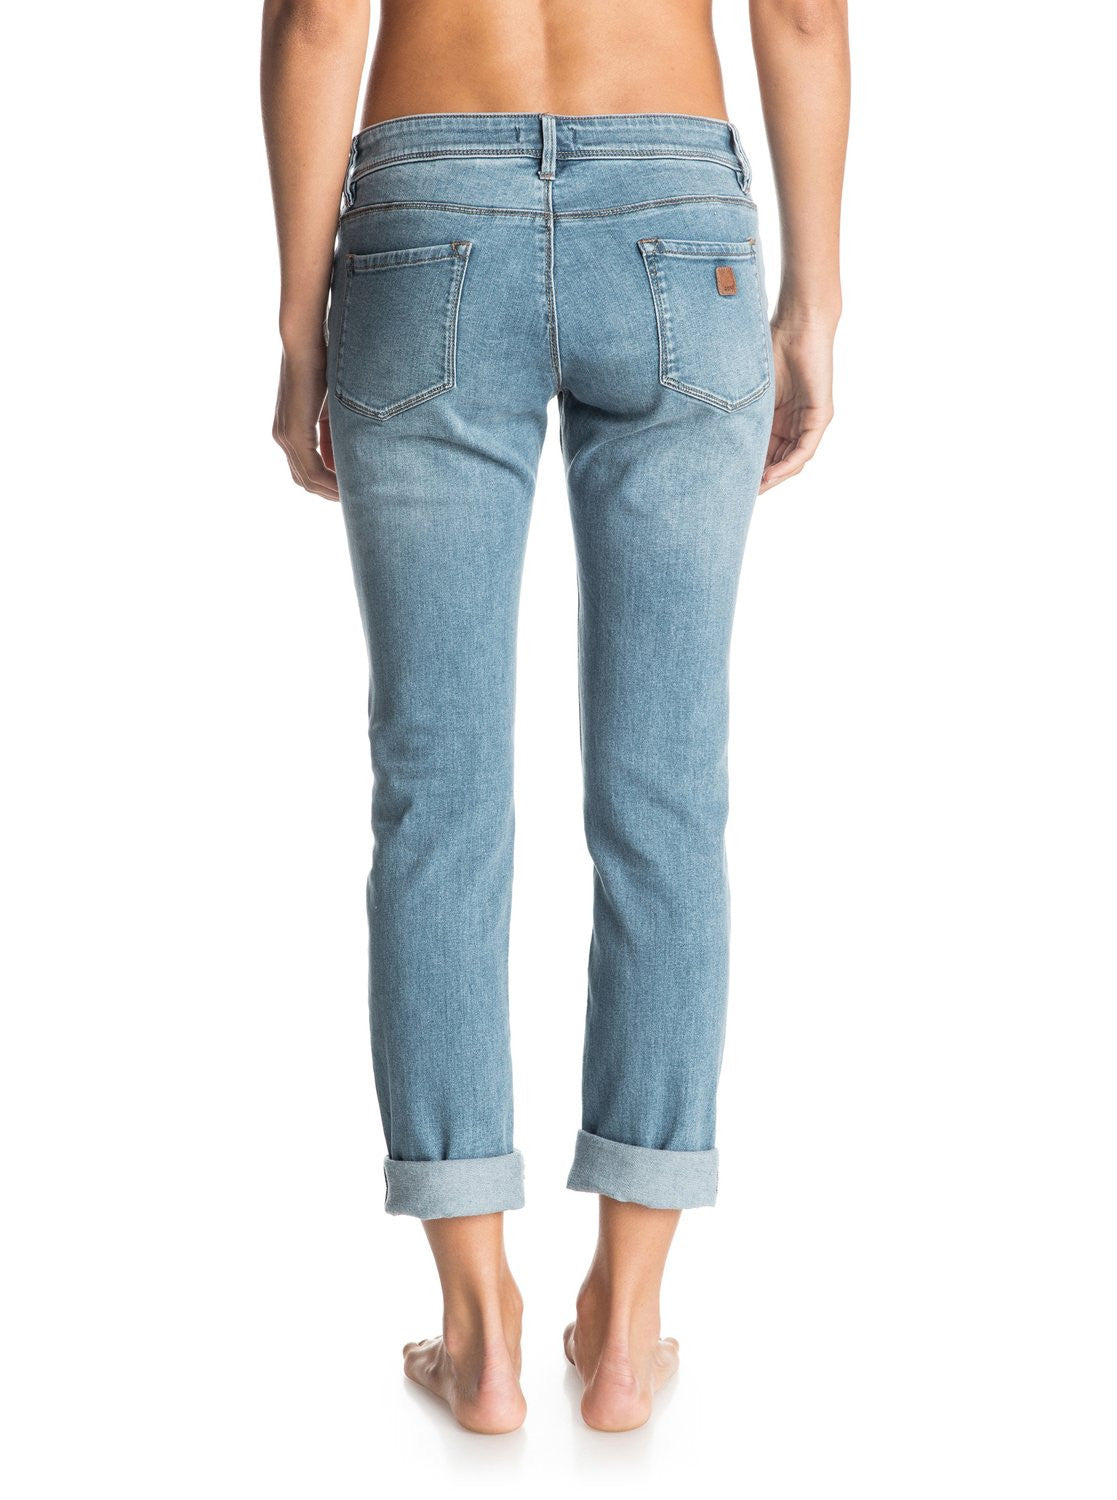 Roxy Ladies Suntrippers Vintage Jeans Blue